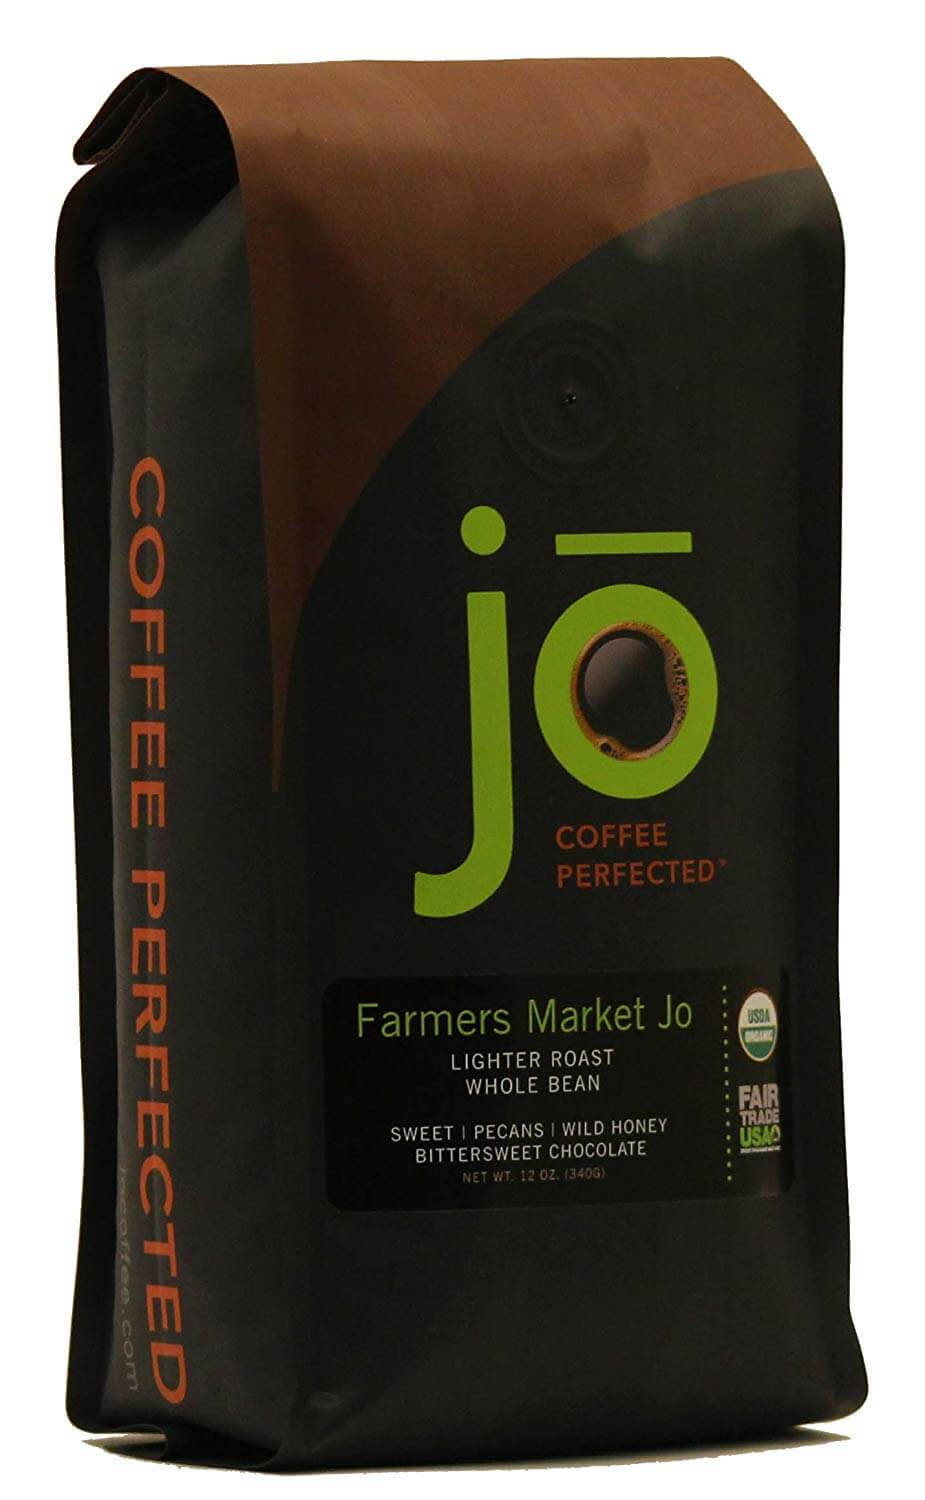 Jo Coffee FARMERS MARKET JO